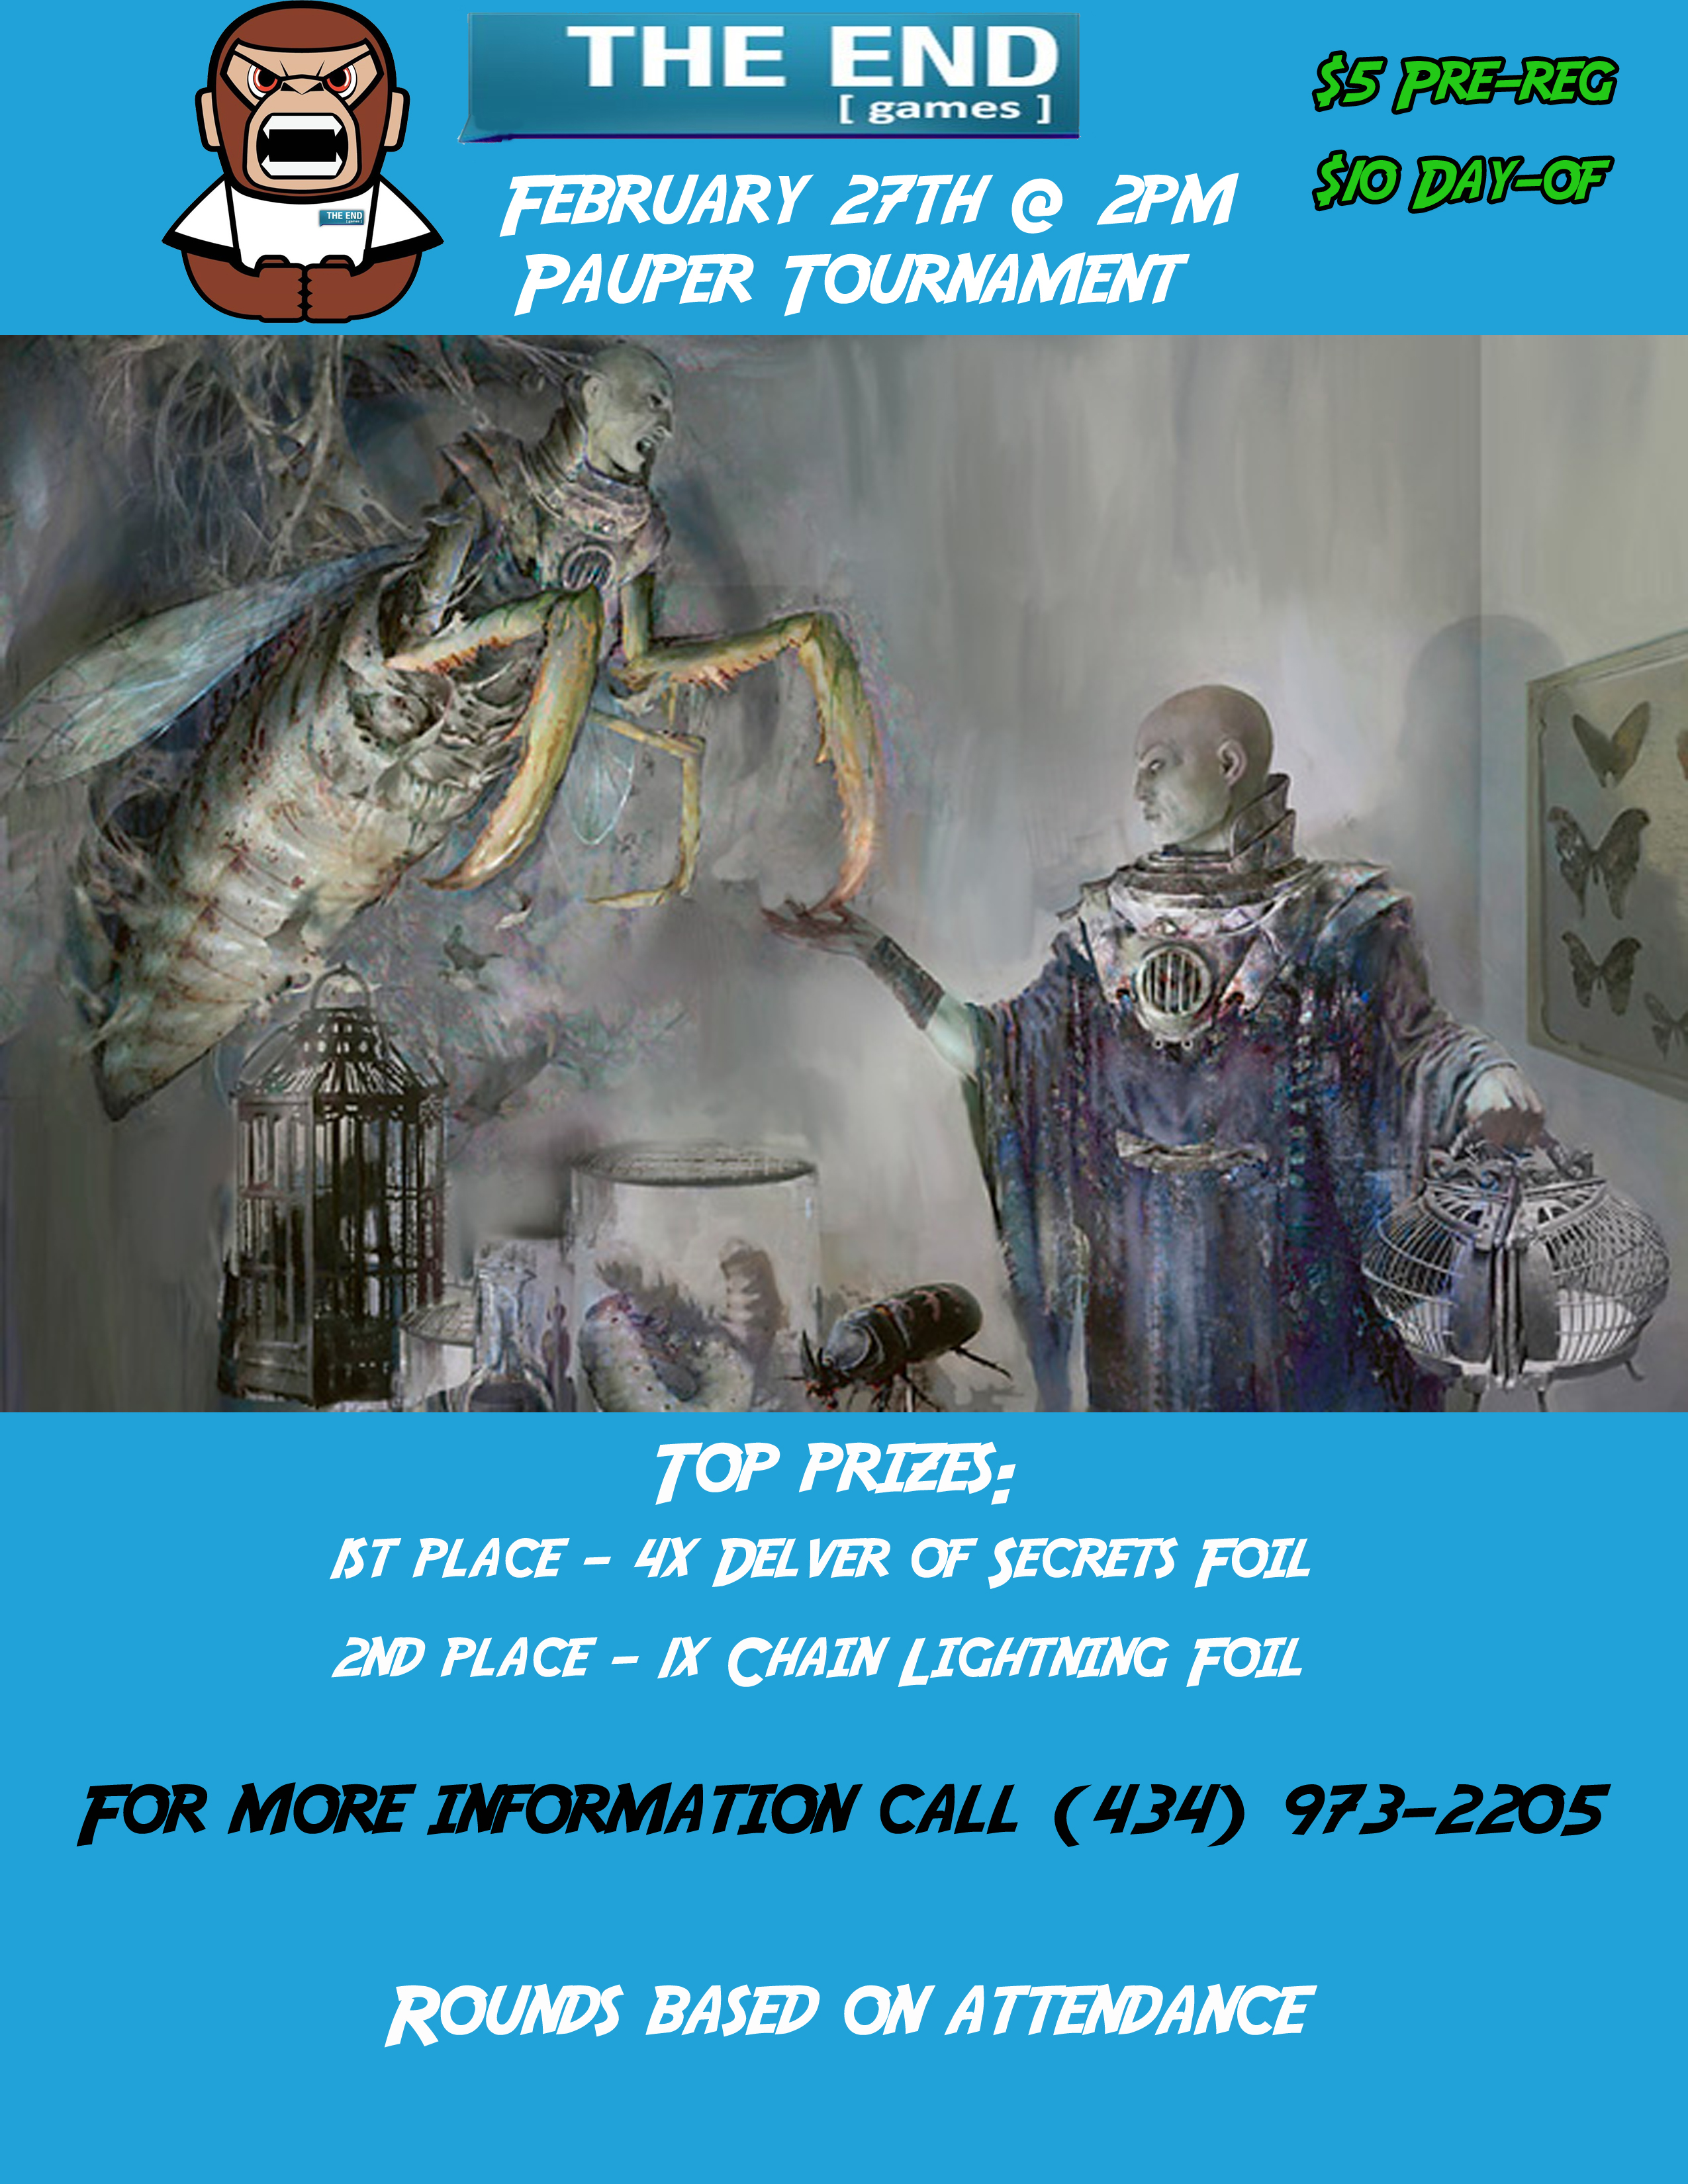 feb 27th Pauper Flier copy